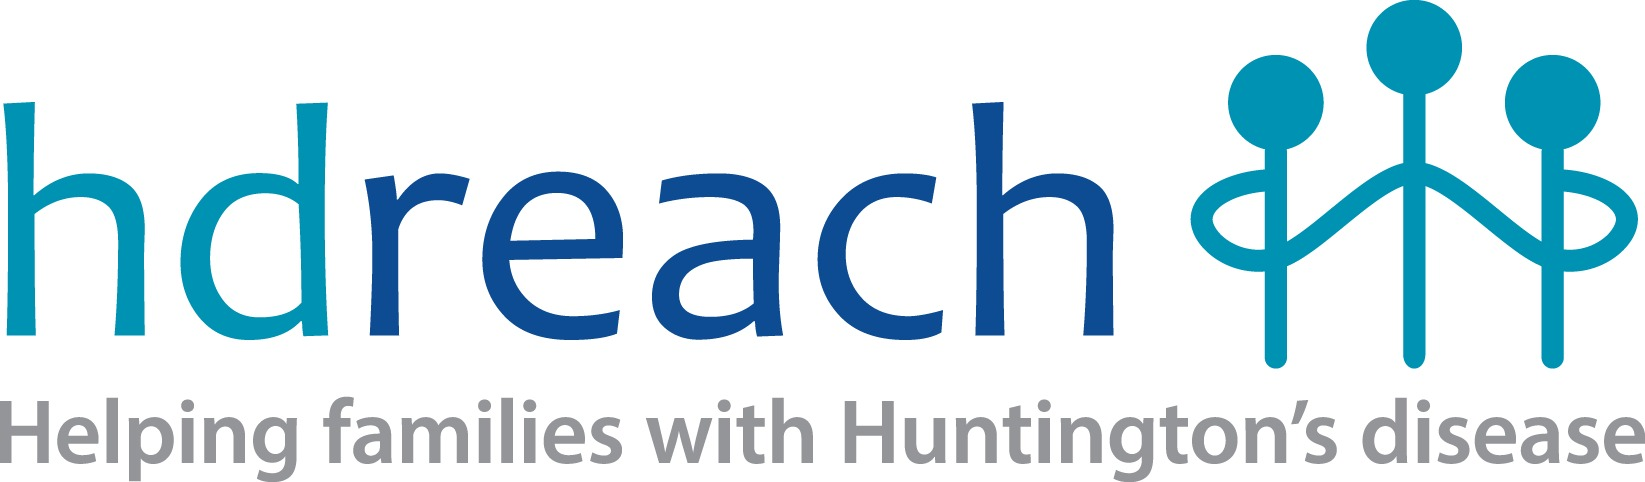 HD Reach Logo - Helping families with Huntington's disease